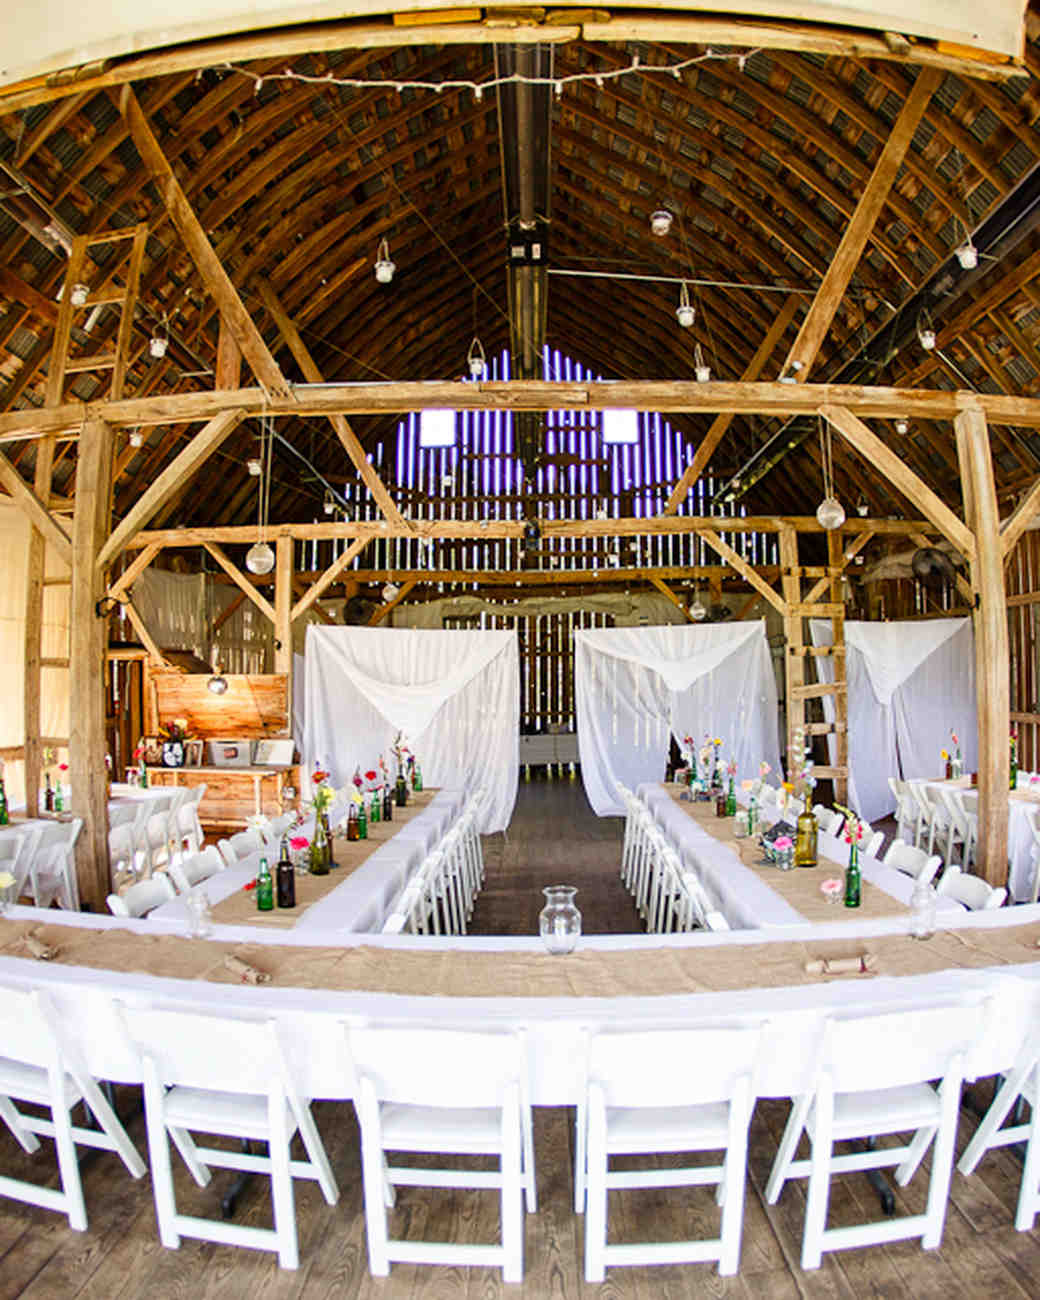 rustic-wedding-handbook-venues-enchanted-barn-0914.jpg